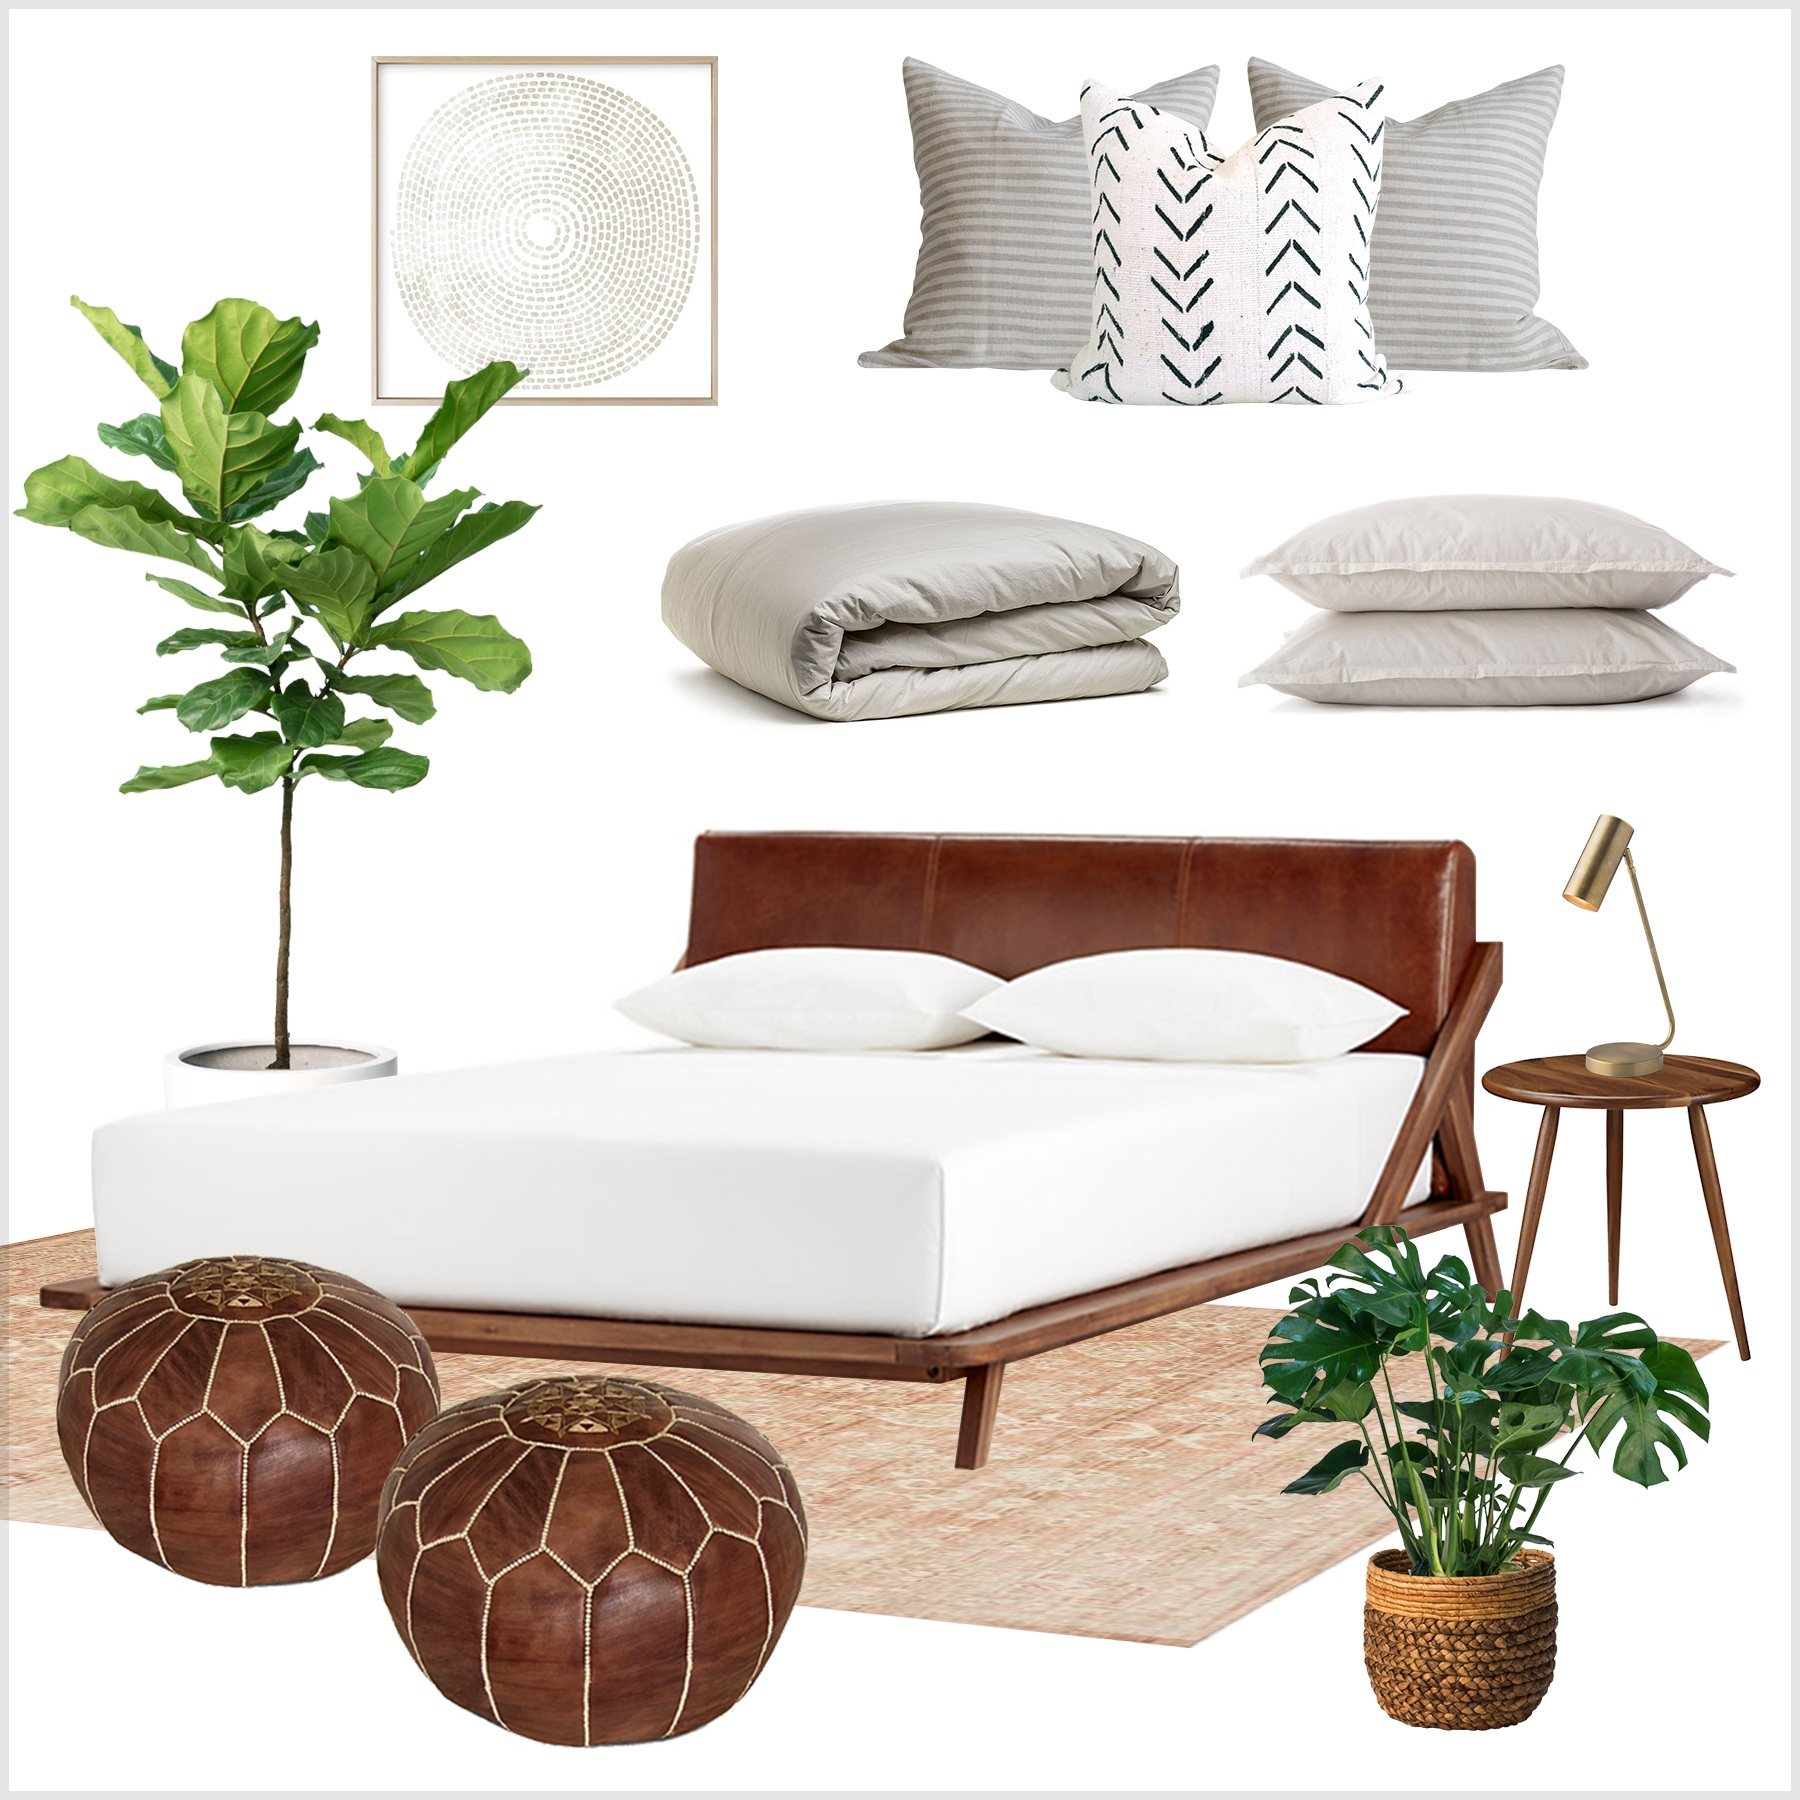 2: Furnishing Design in a Day - 2D Style Board